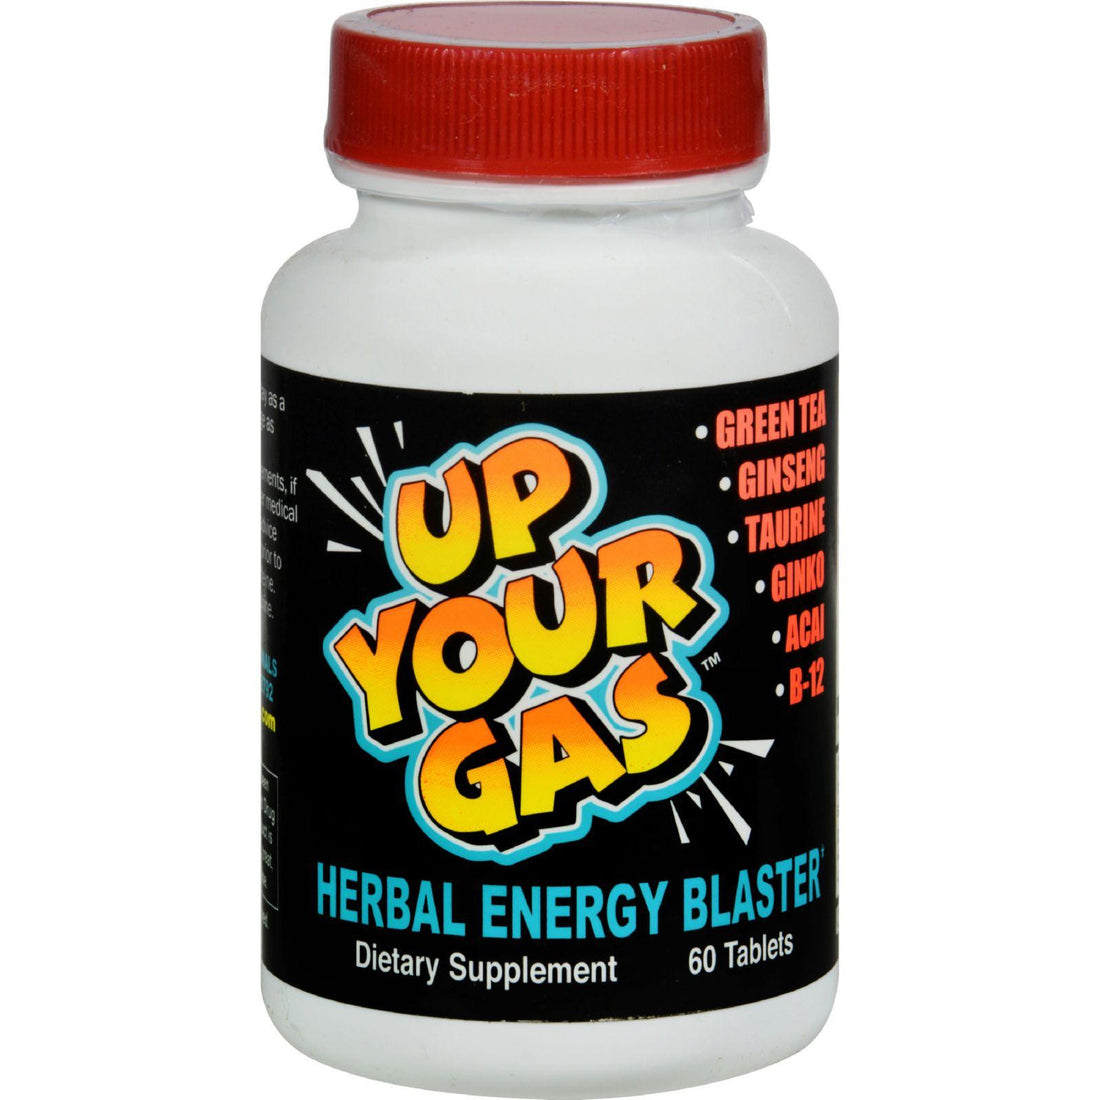 Mother Mantis: House Of David Up Your Gas Energy Blaster - 60 Tablets Hot Stuff